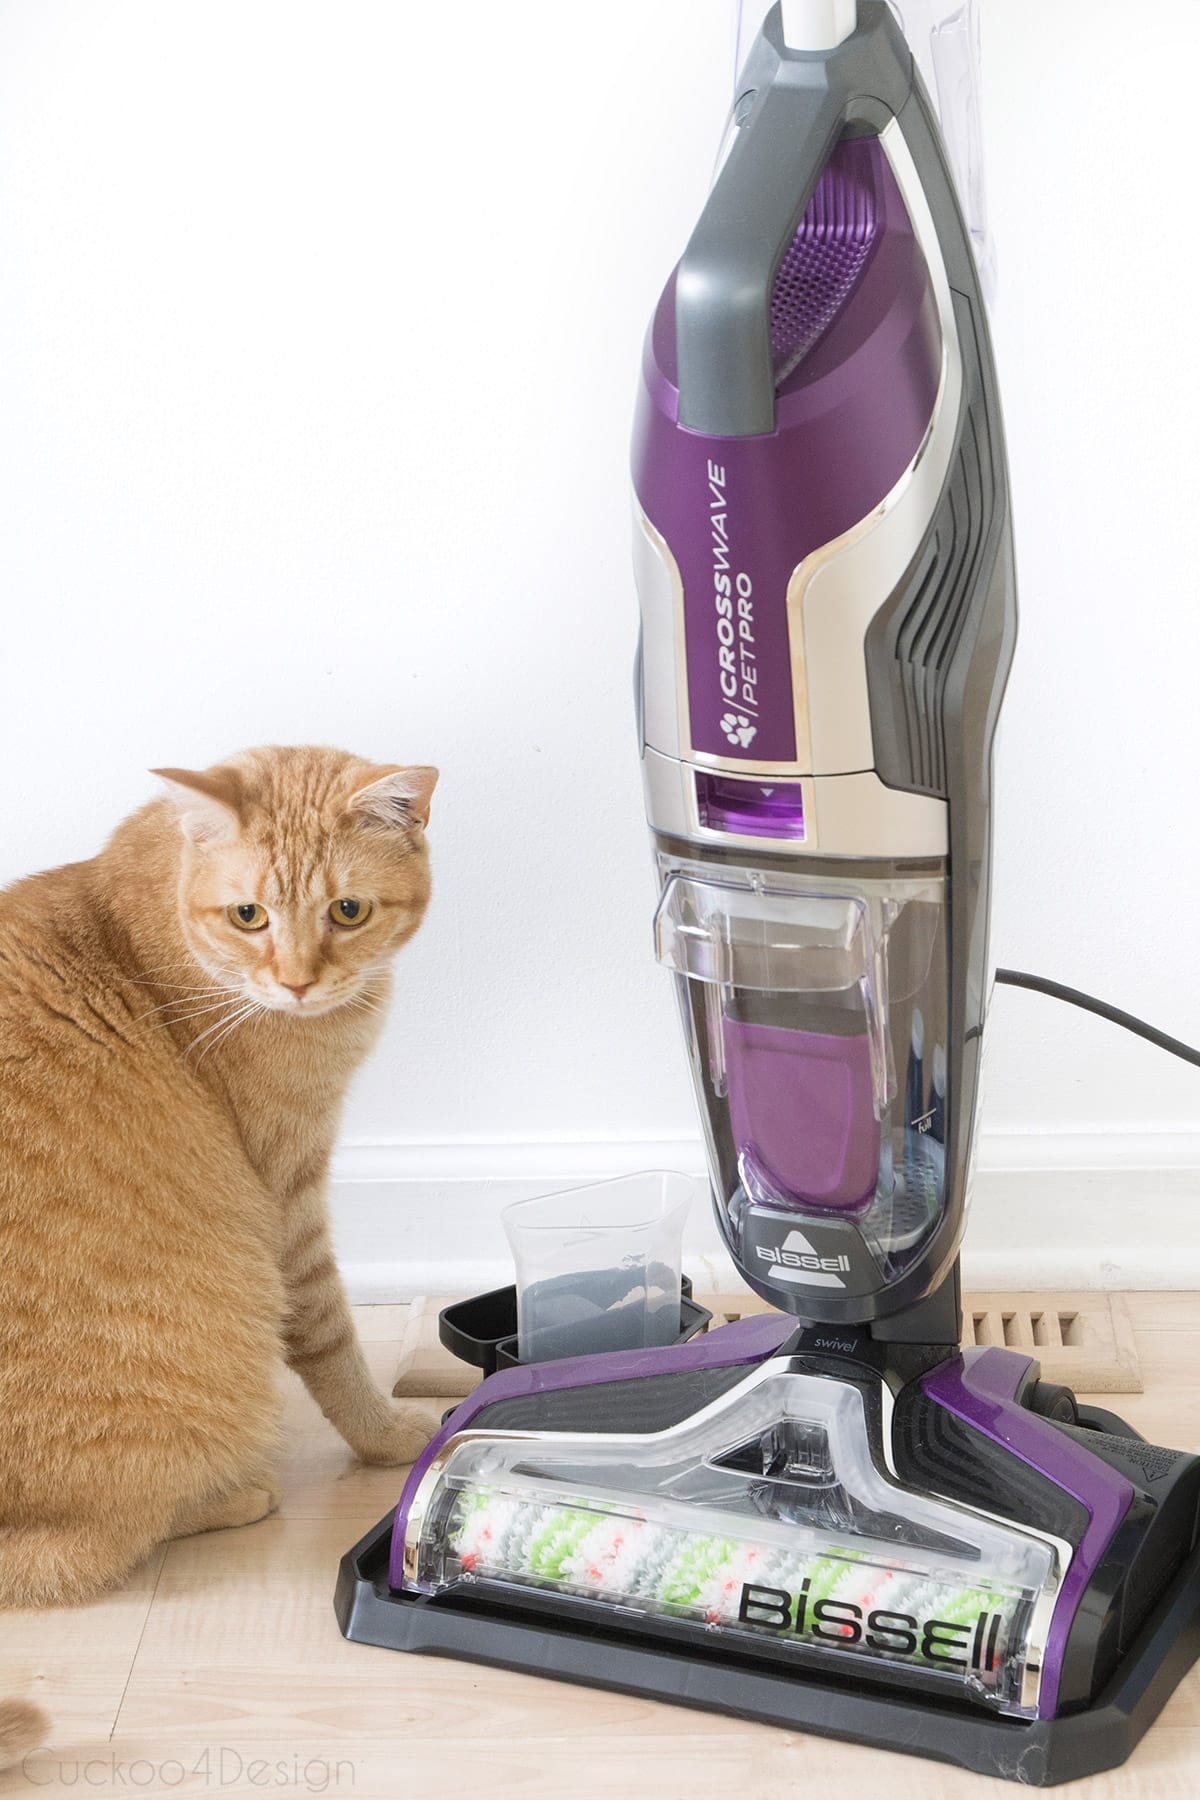 BISSELL crosswave pet pro review in cat household